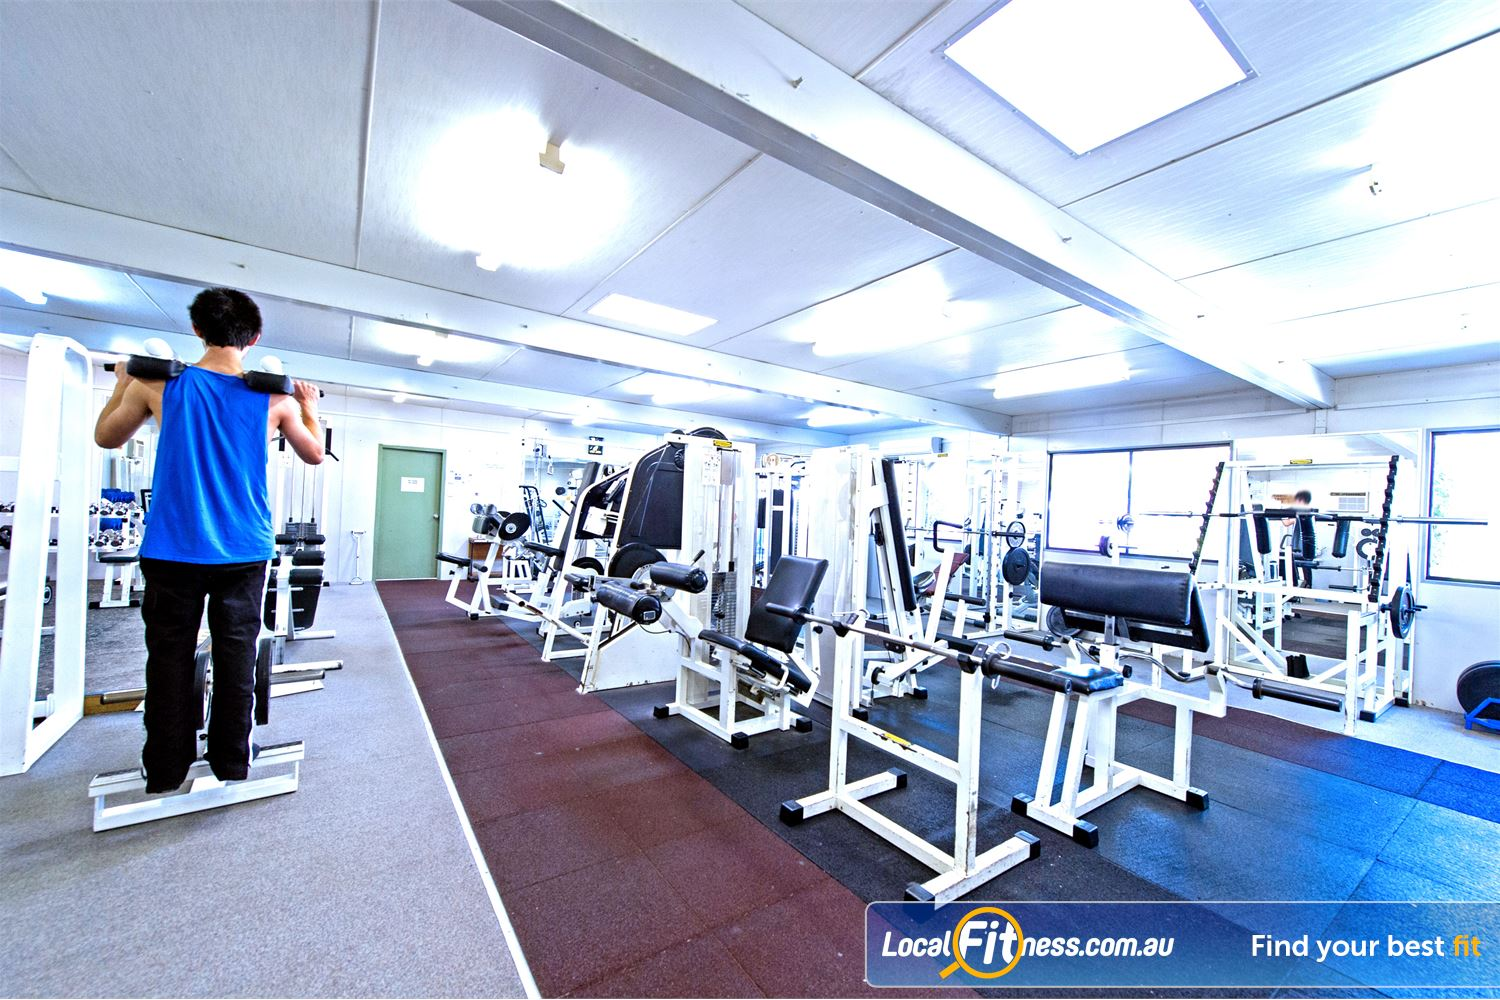 Waves Fitness and Aquatic Centre Baulkham Hills Full range of easy to use pin-loading and plate-loading machines.